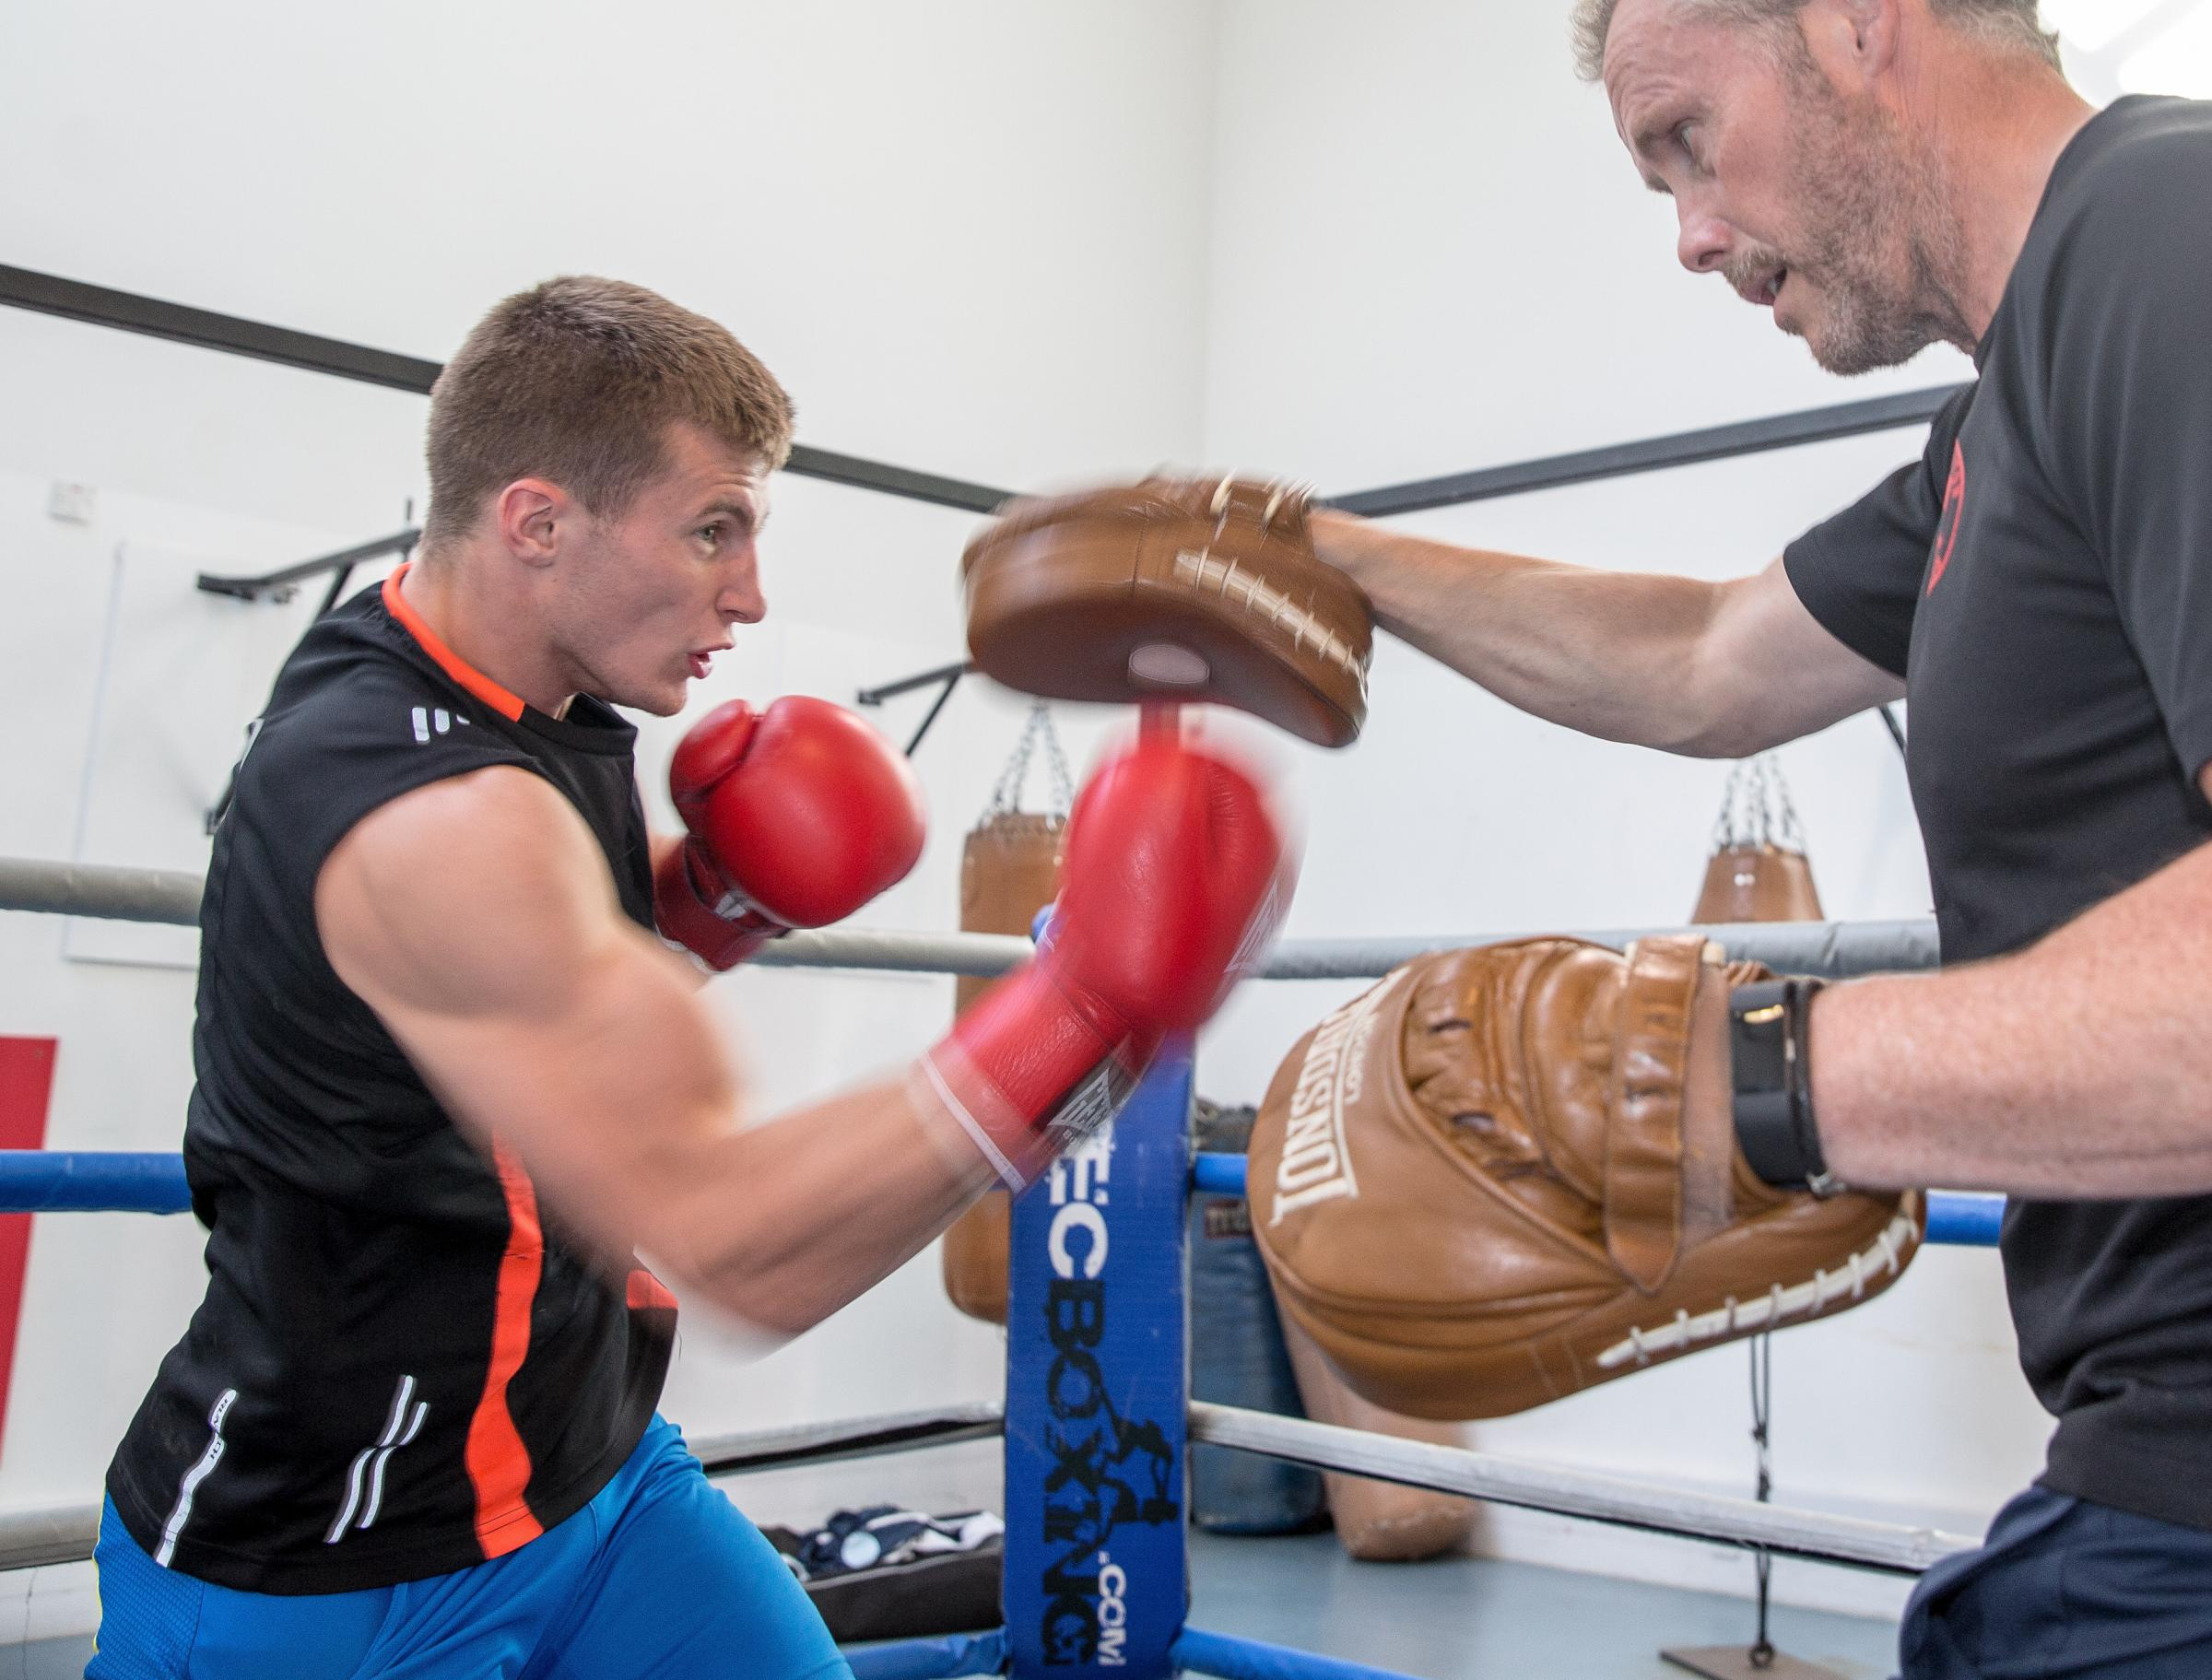 Sean Lazzerini prepares to bare his teeth ahead of Boxing World Championships